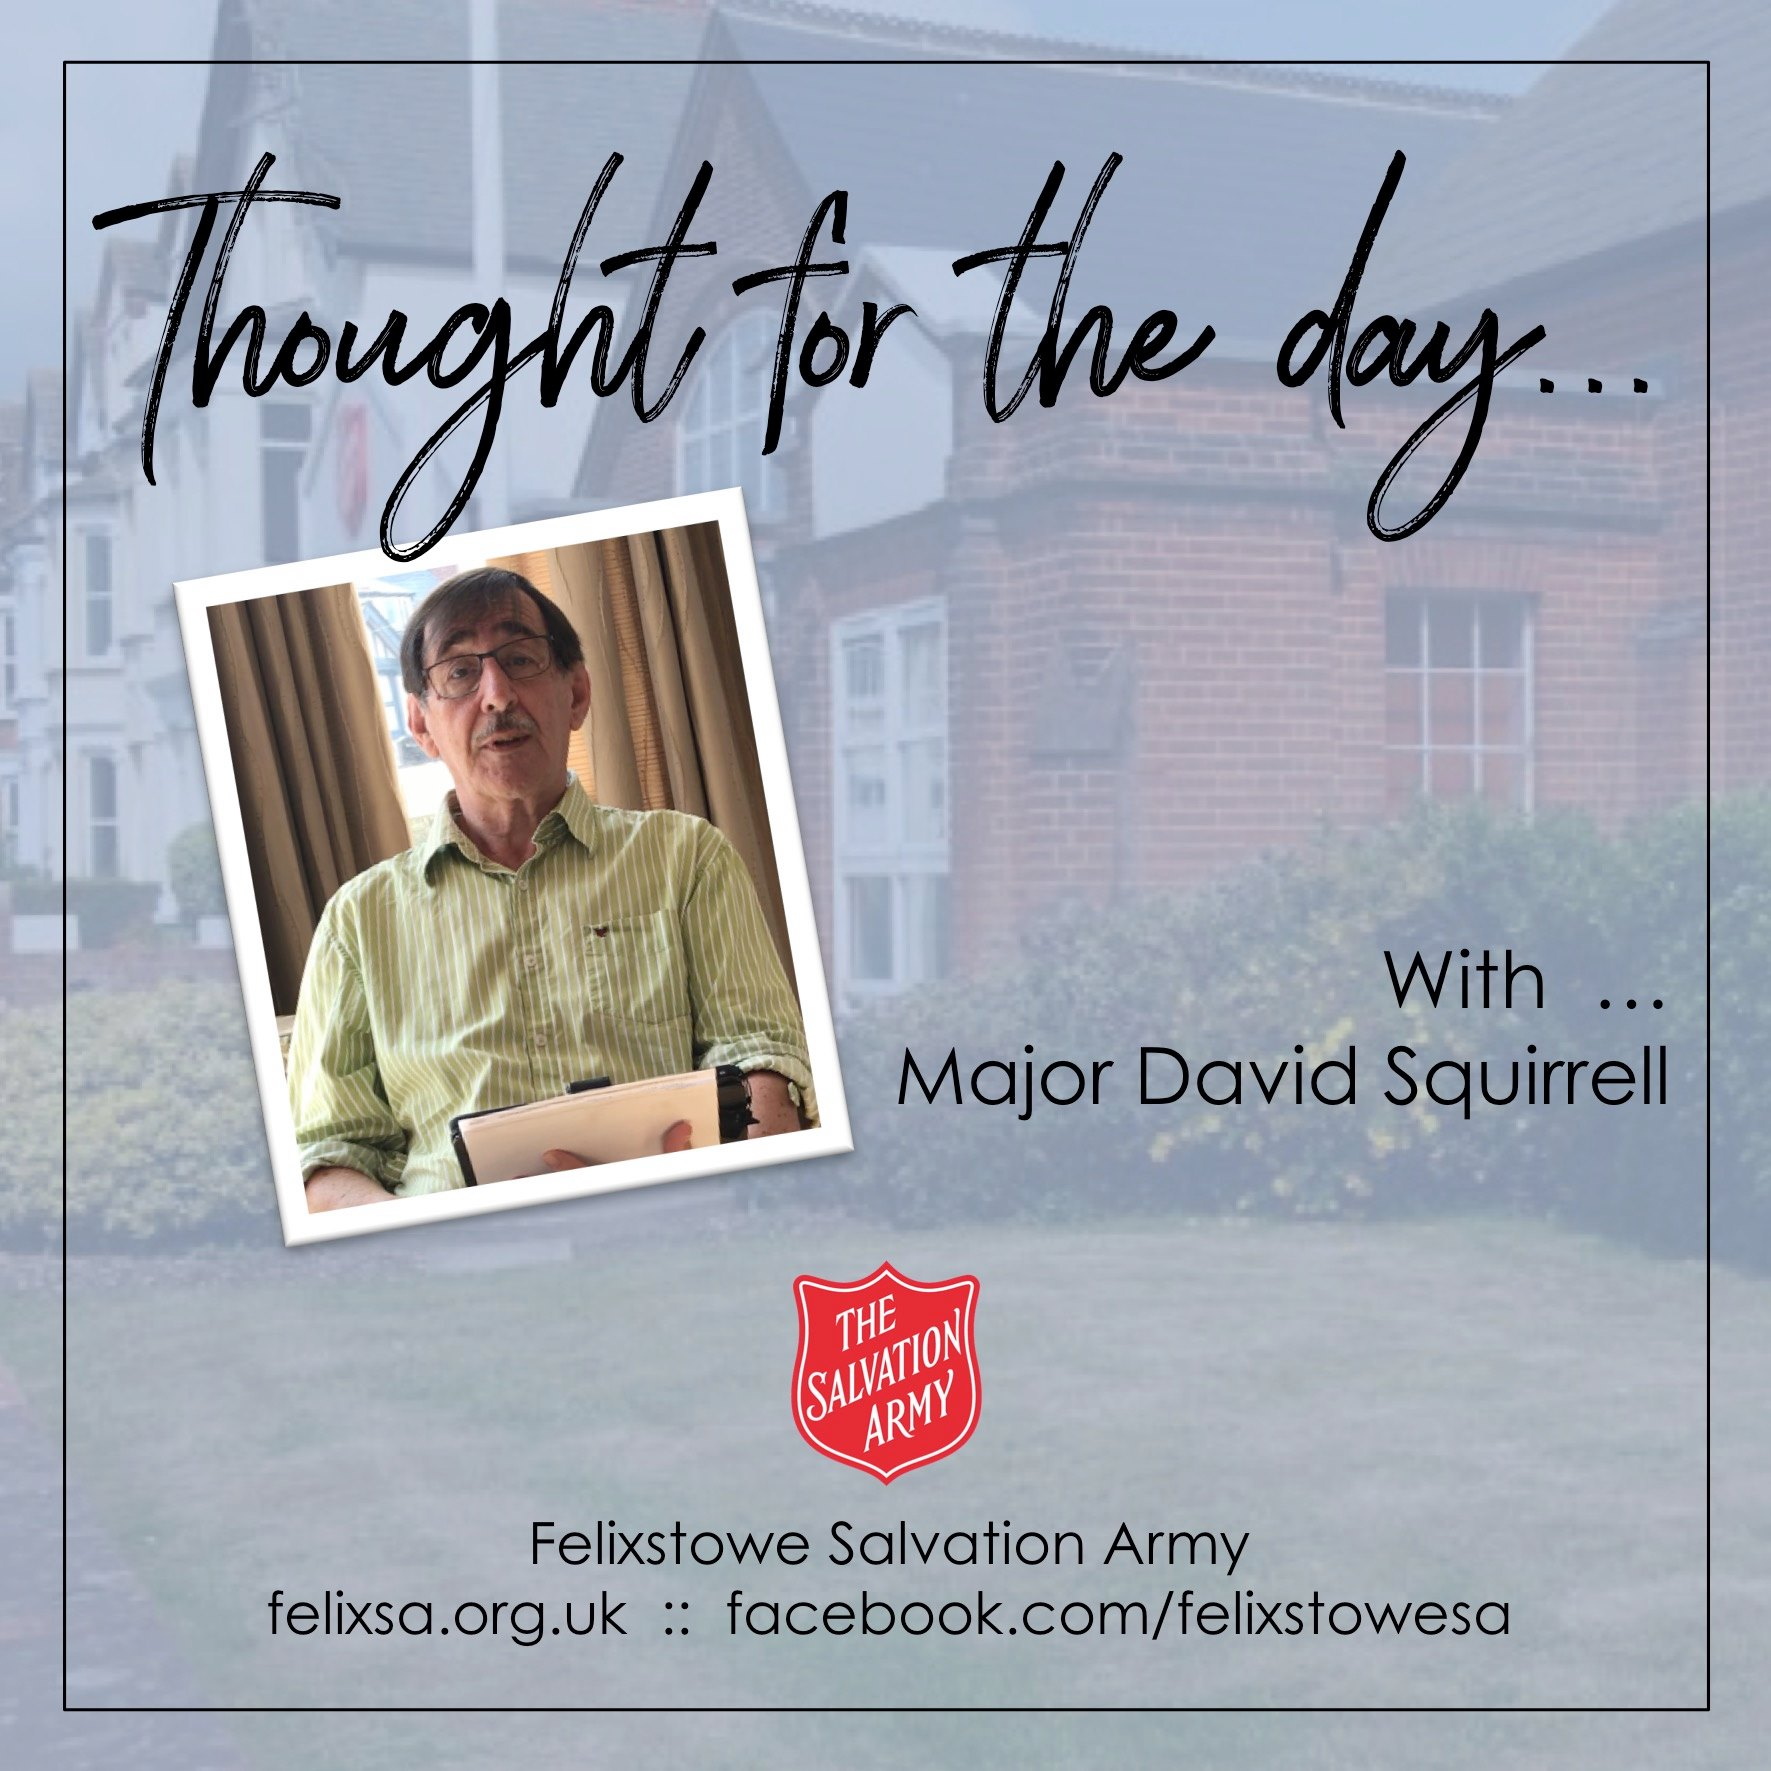 Thought for the Day with Major David Squirrell